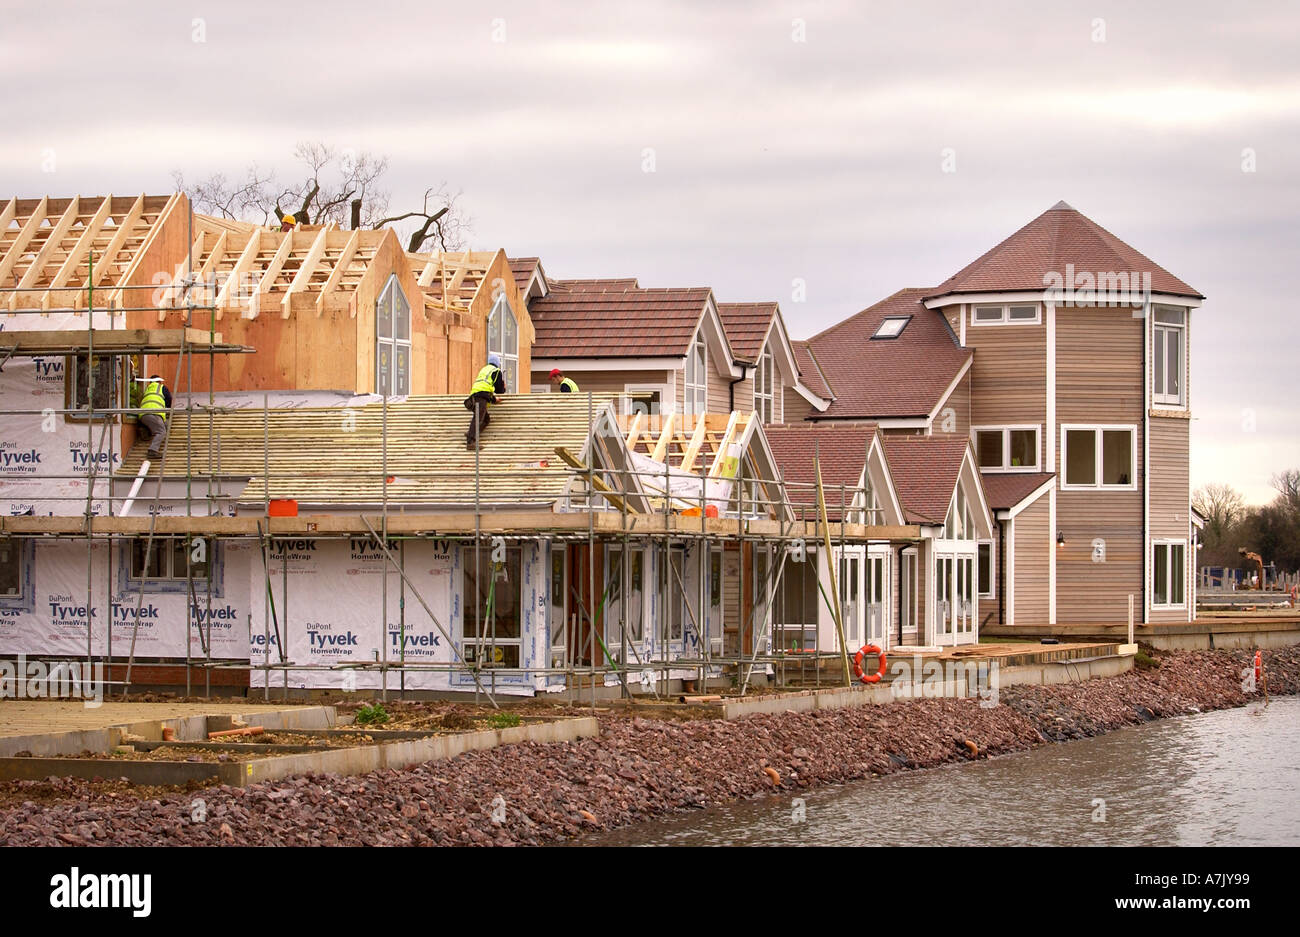 CONSTRUCTION OF NEW ENGLAND STYLE KIT HOUSES AT WINDRUSH LAKE THE WATERMARK DEVELOPMENT SOUTH CERNEY NEAR CIRENCESTER GLOUCESTER